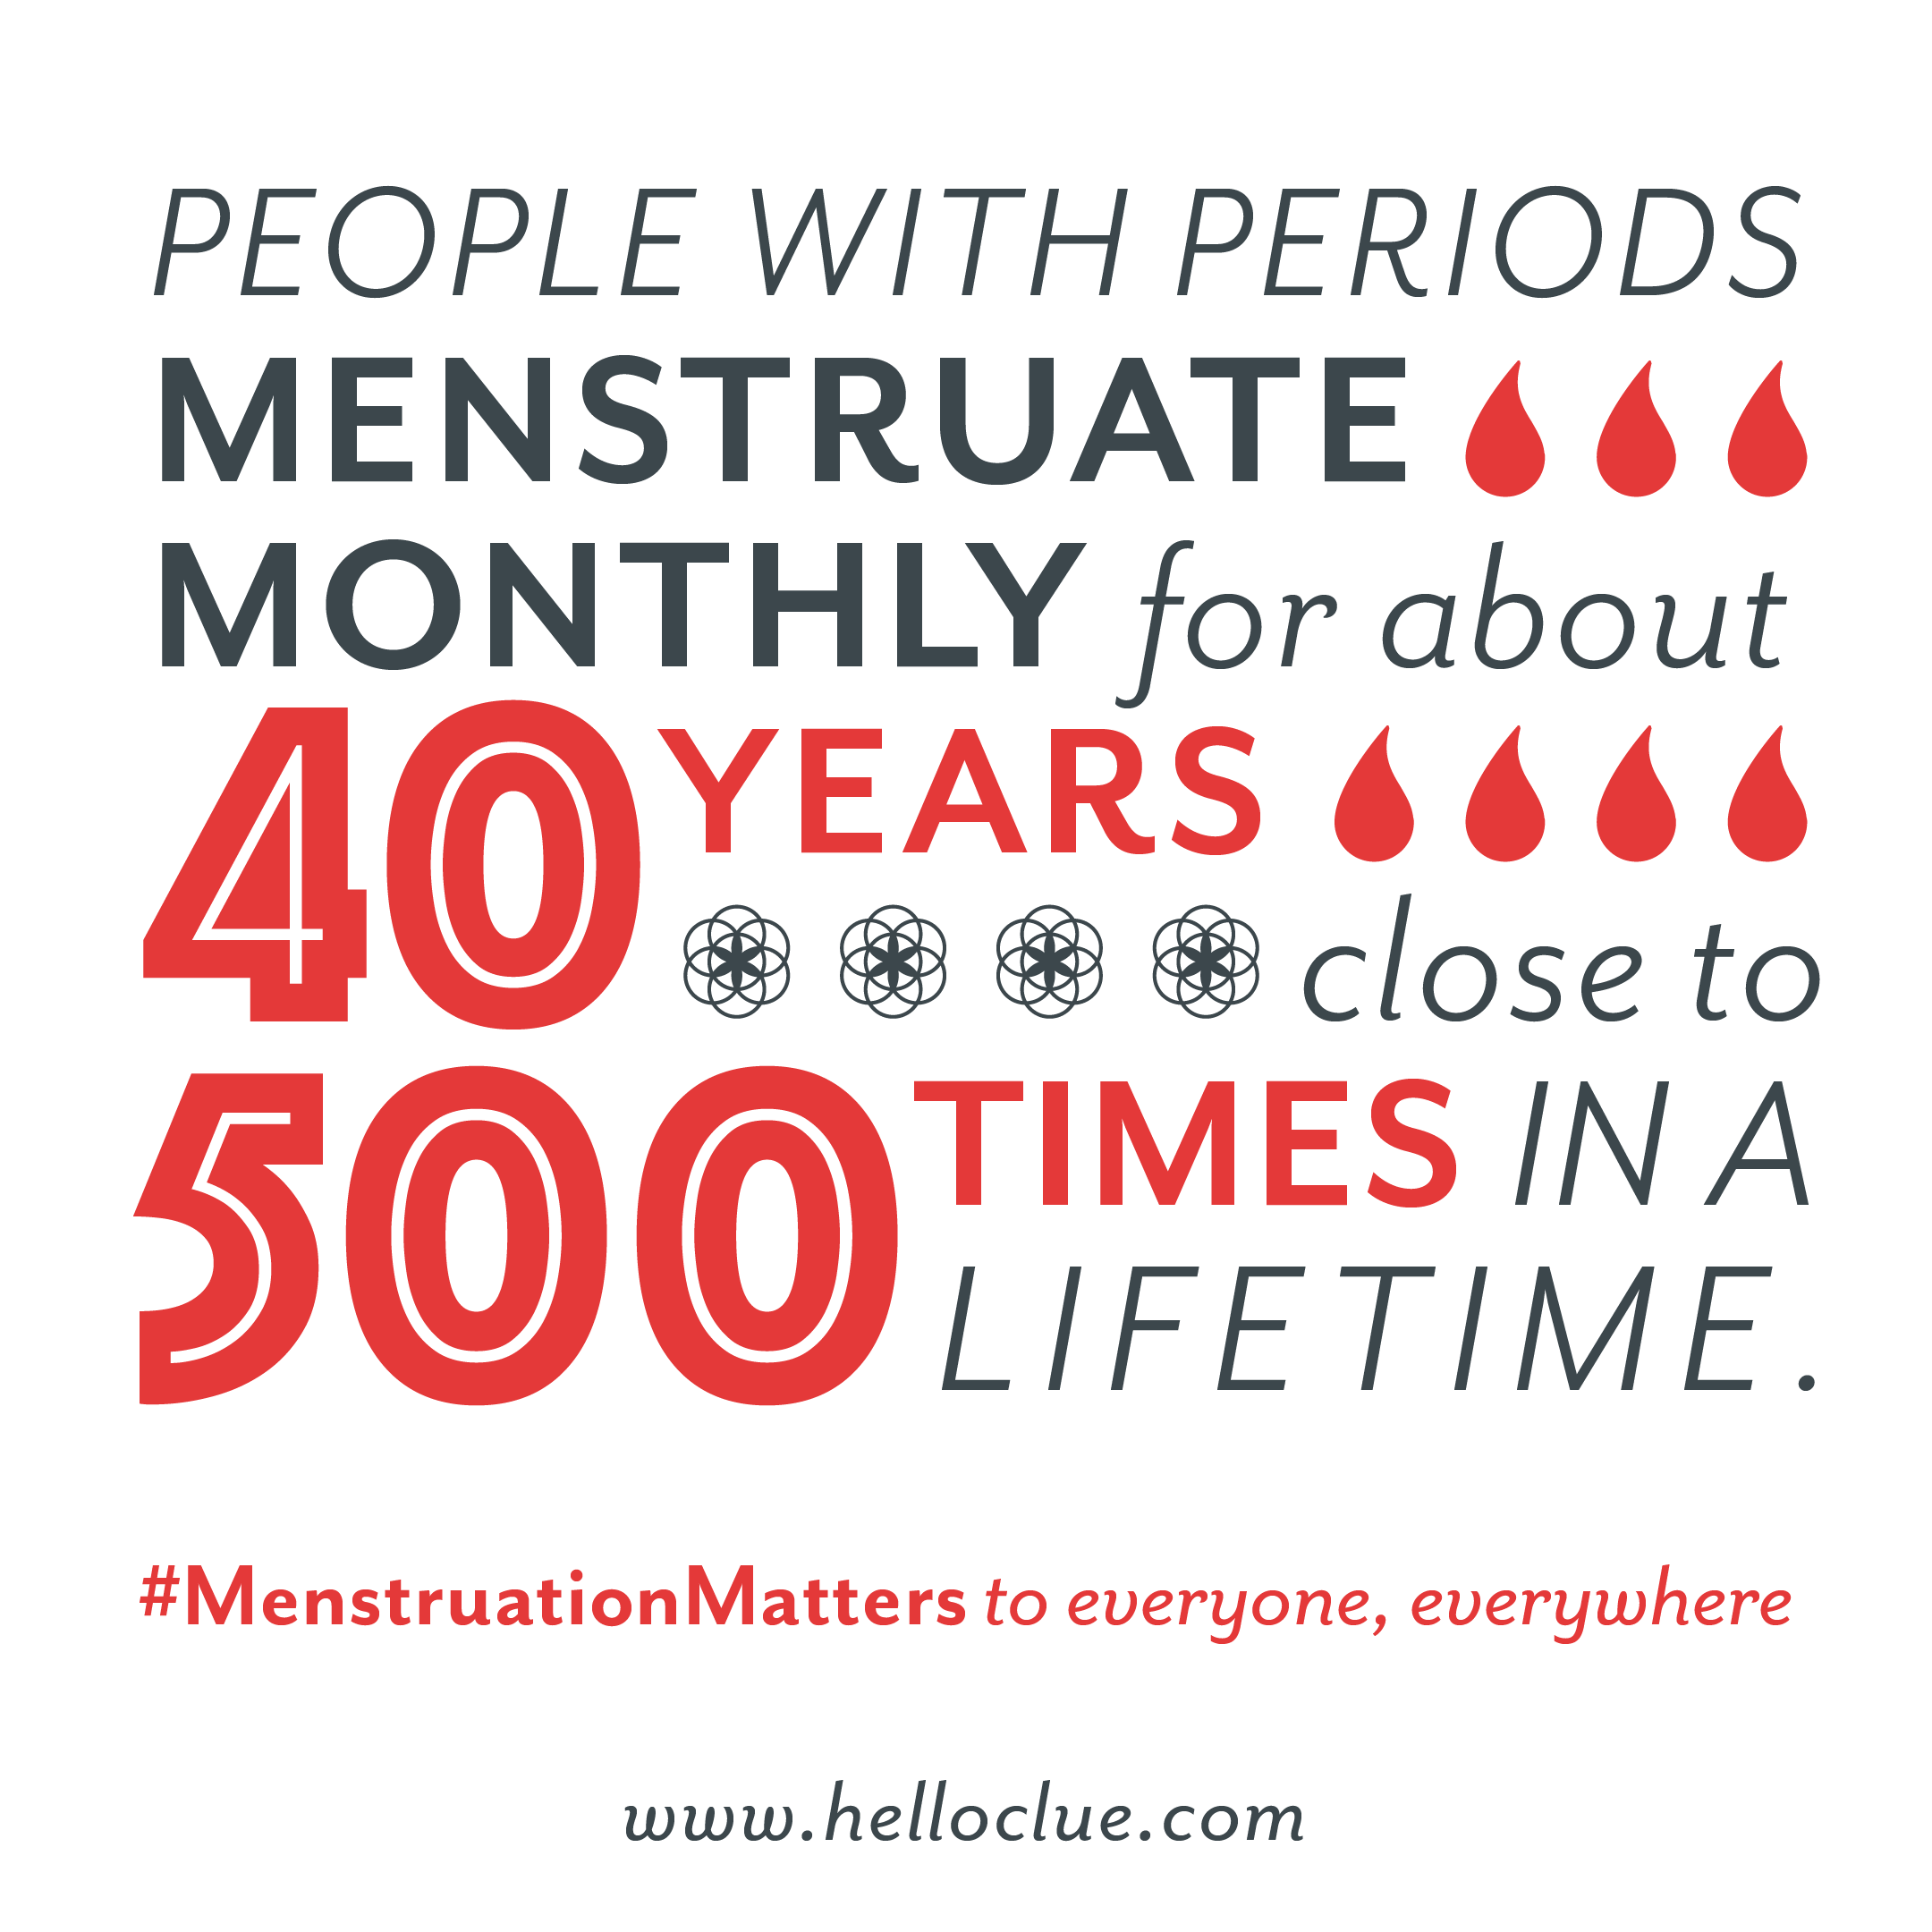 """[Graphic text: """"People with periods menstruate monthly for about 40 years, close to 500 times in a lifetime. #MenstruationMatters to everyone, everywhere. www.helloclue.com""""]"""